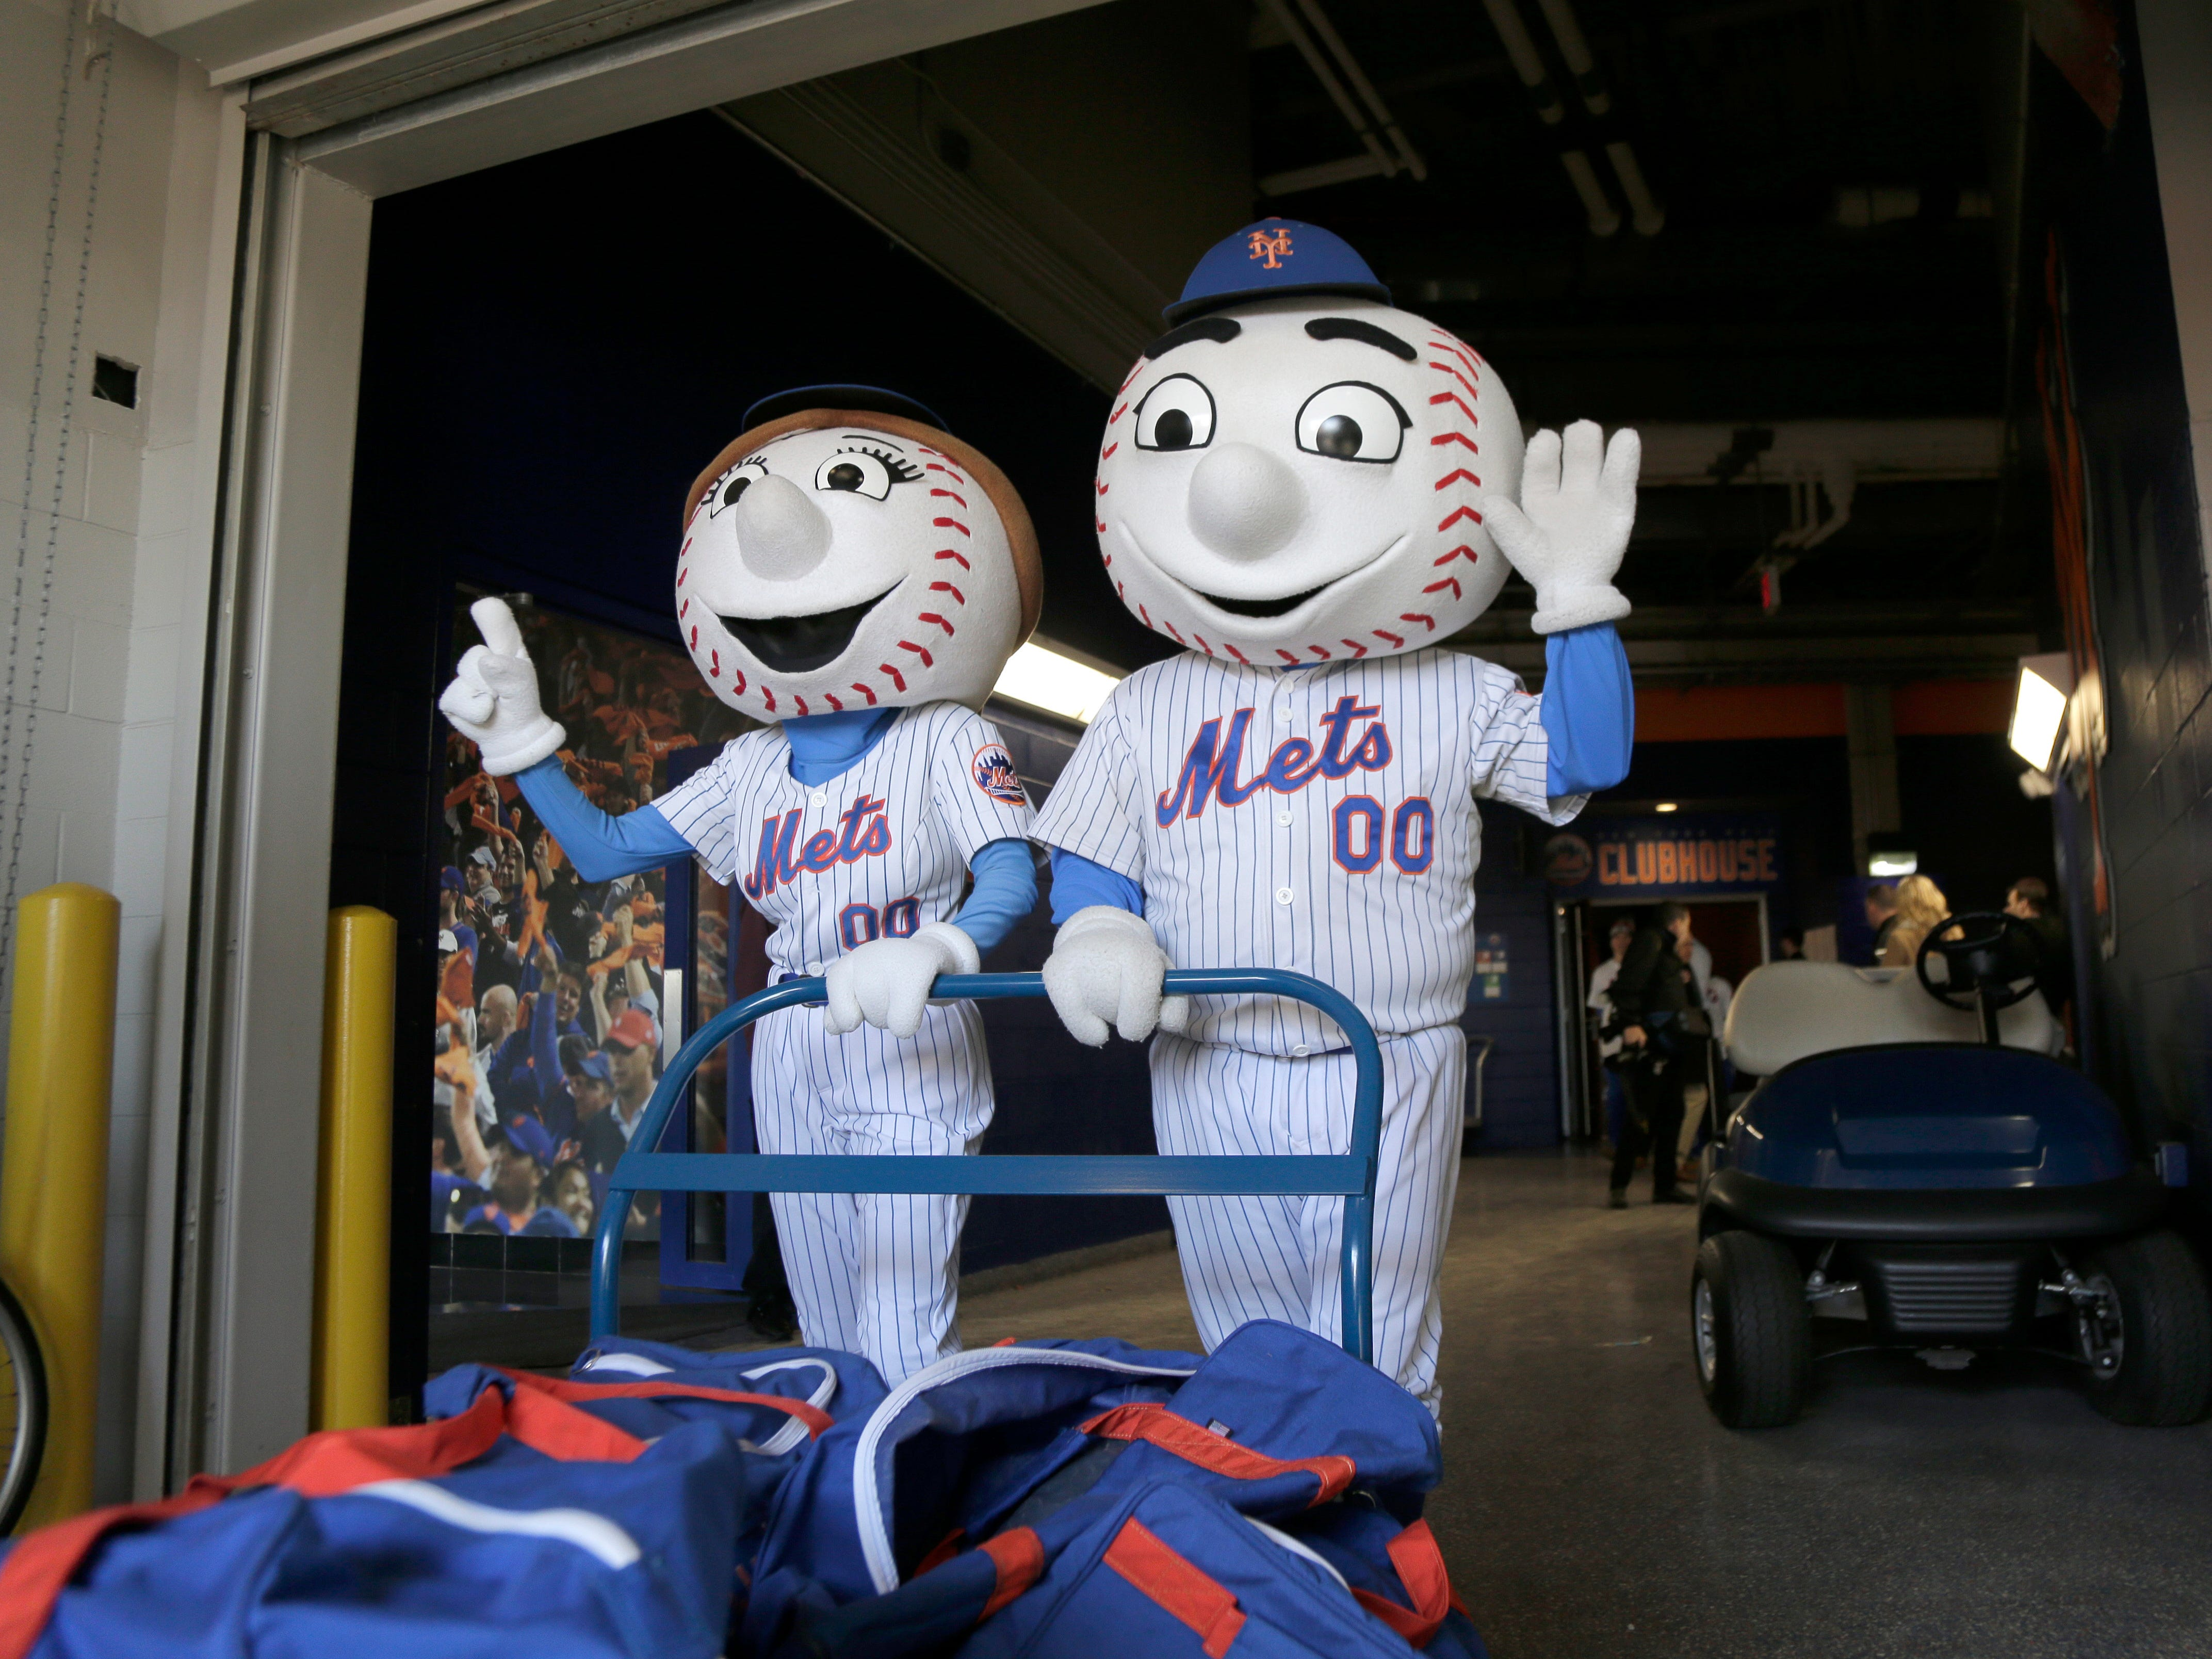 Feb. 4: Mr. and Mrs. Met help pack the team's equipment before it is sent to spring training.